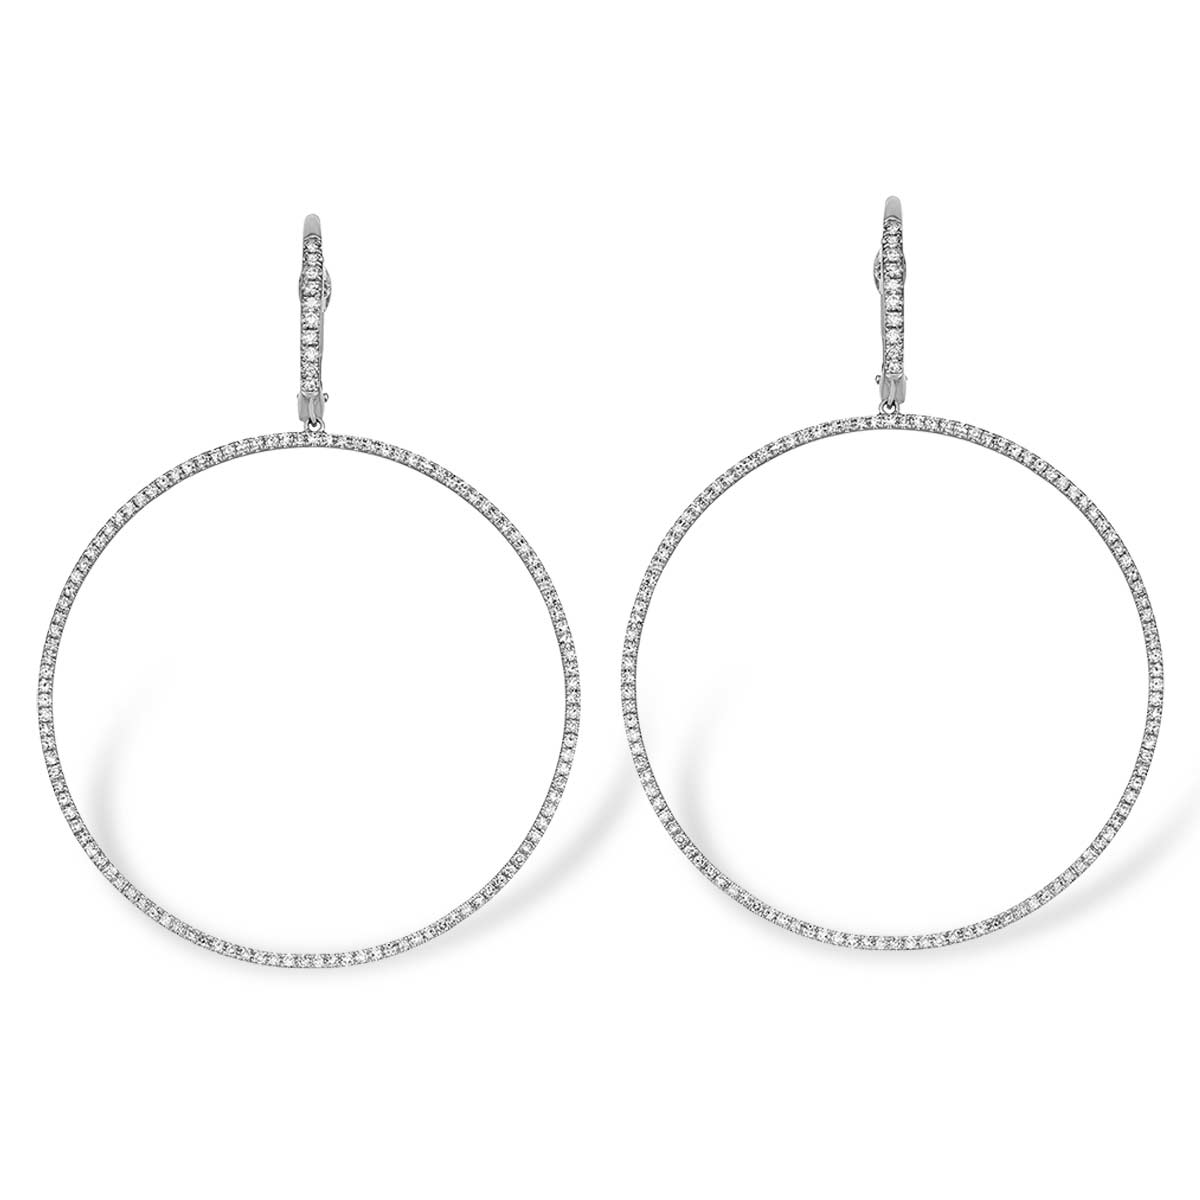 Front Facing Hoops - Serena Williams Jewelry